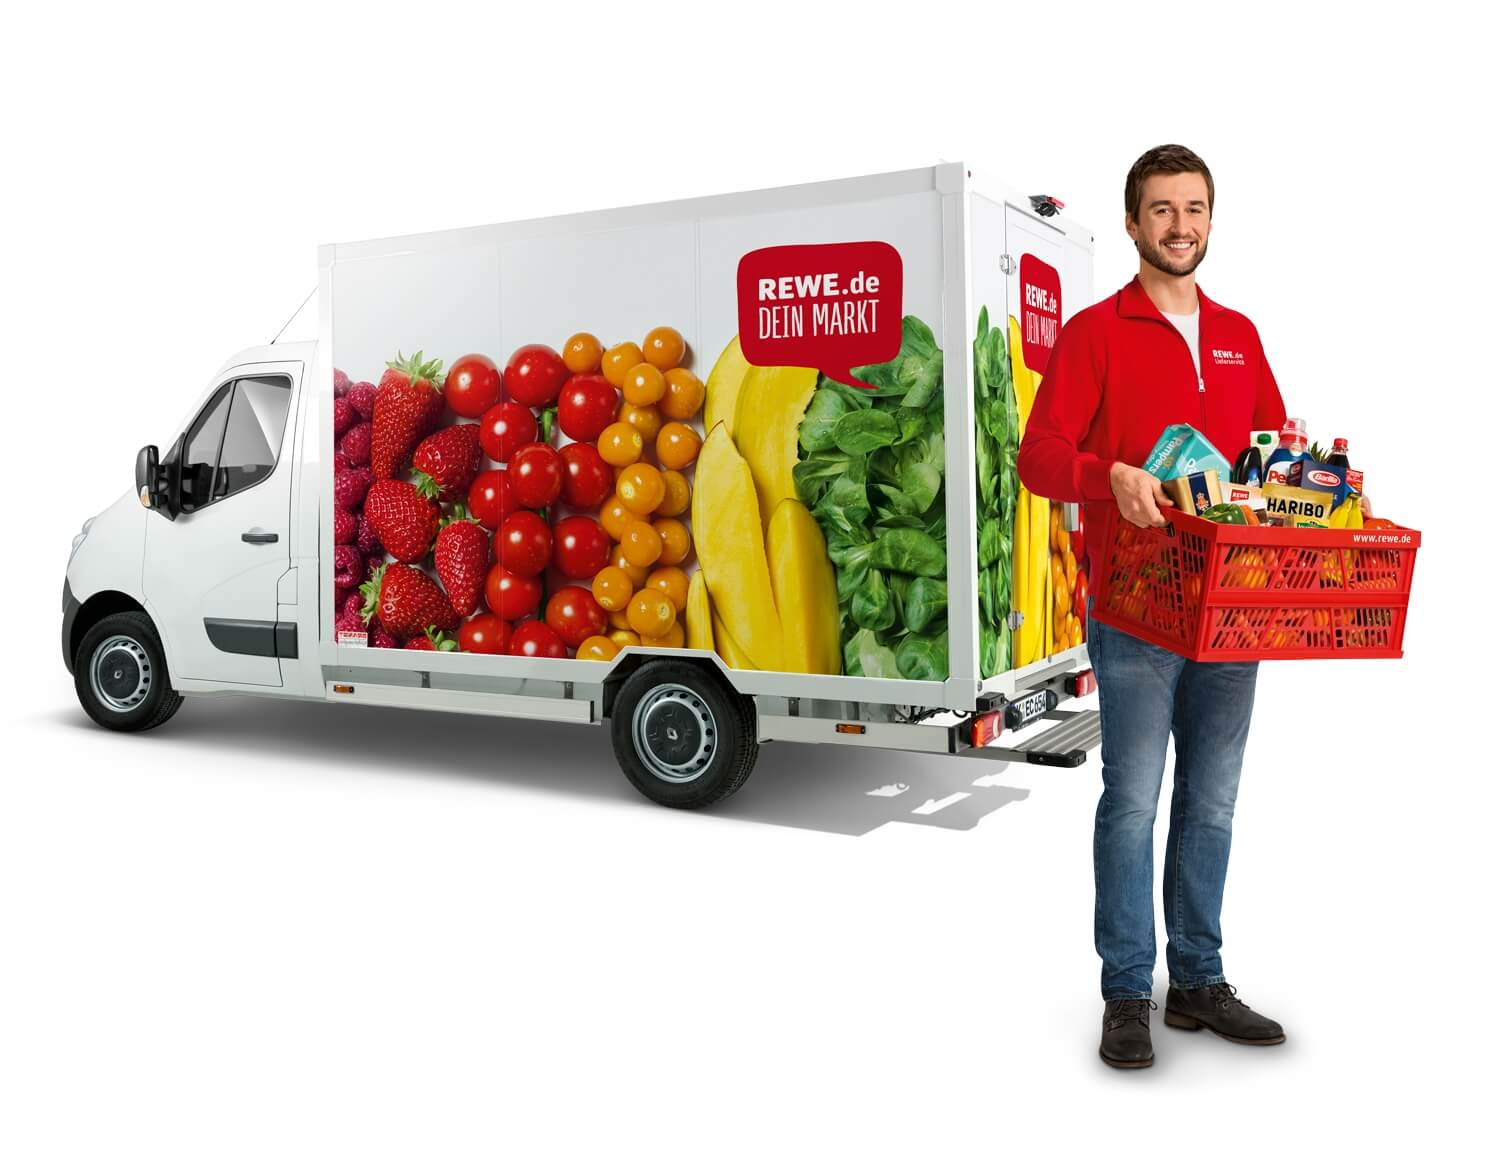 Rewe Angebote Coupons Cashback Deals Spare Bei Rewe